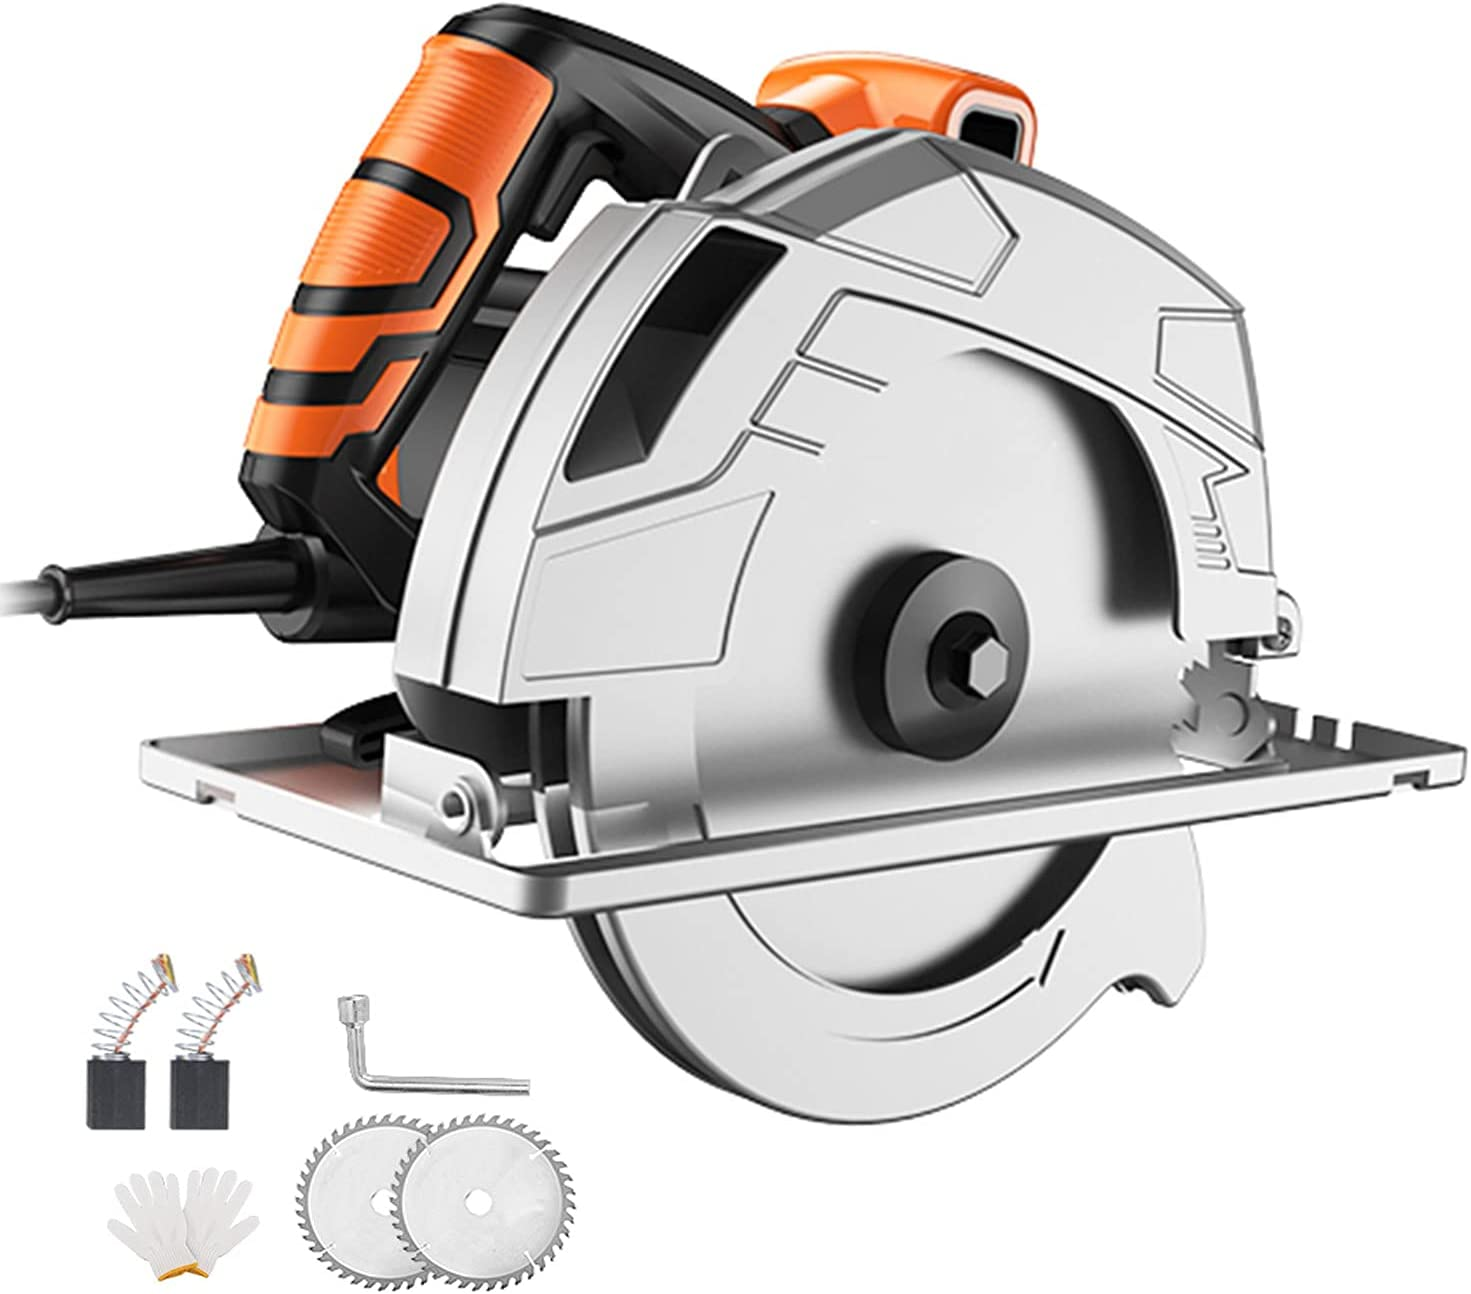 Circular Saw Industry No. 1 2680W Hand Held Bevel Max 77% OFF with 45° Cut